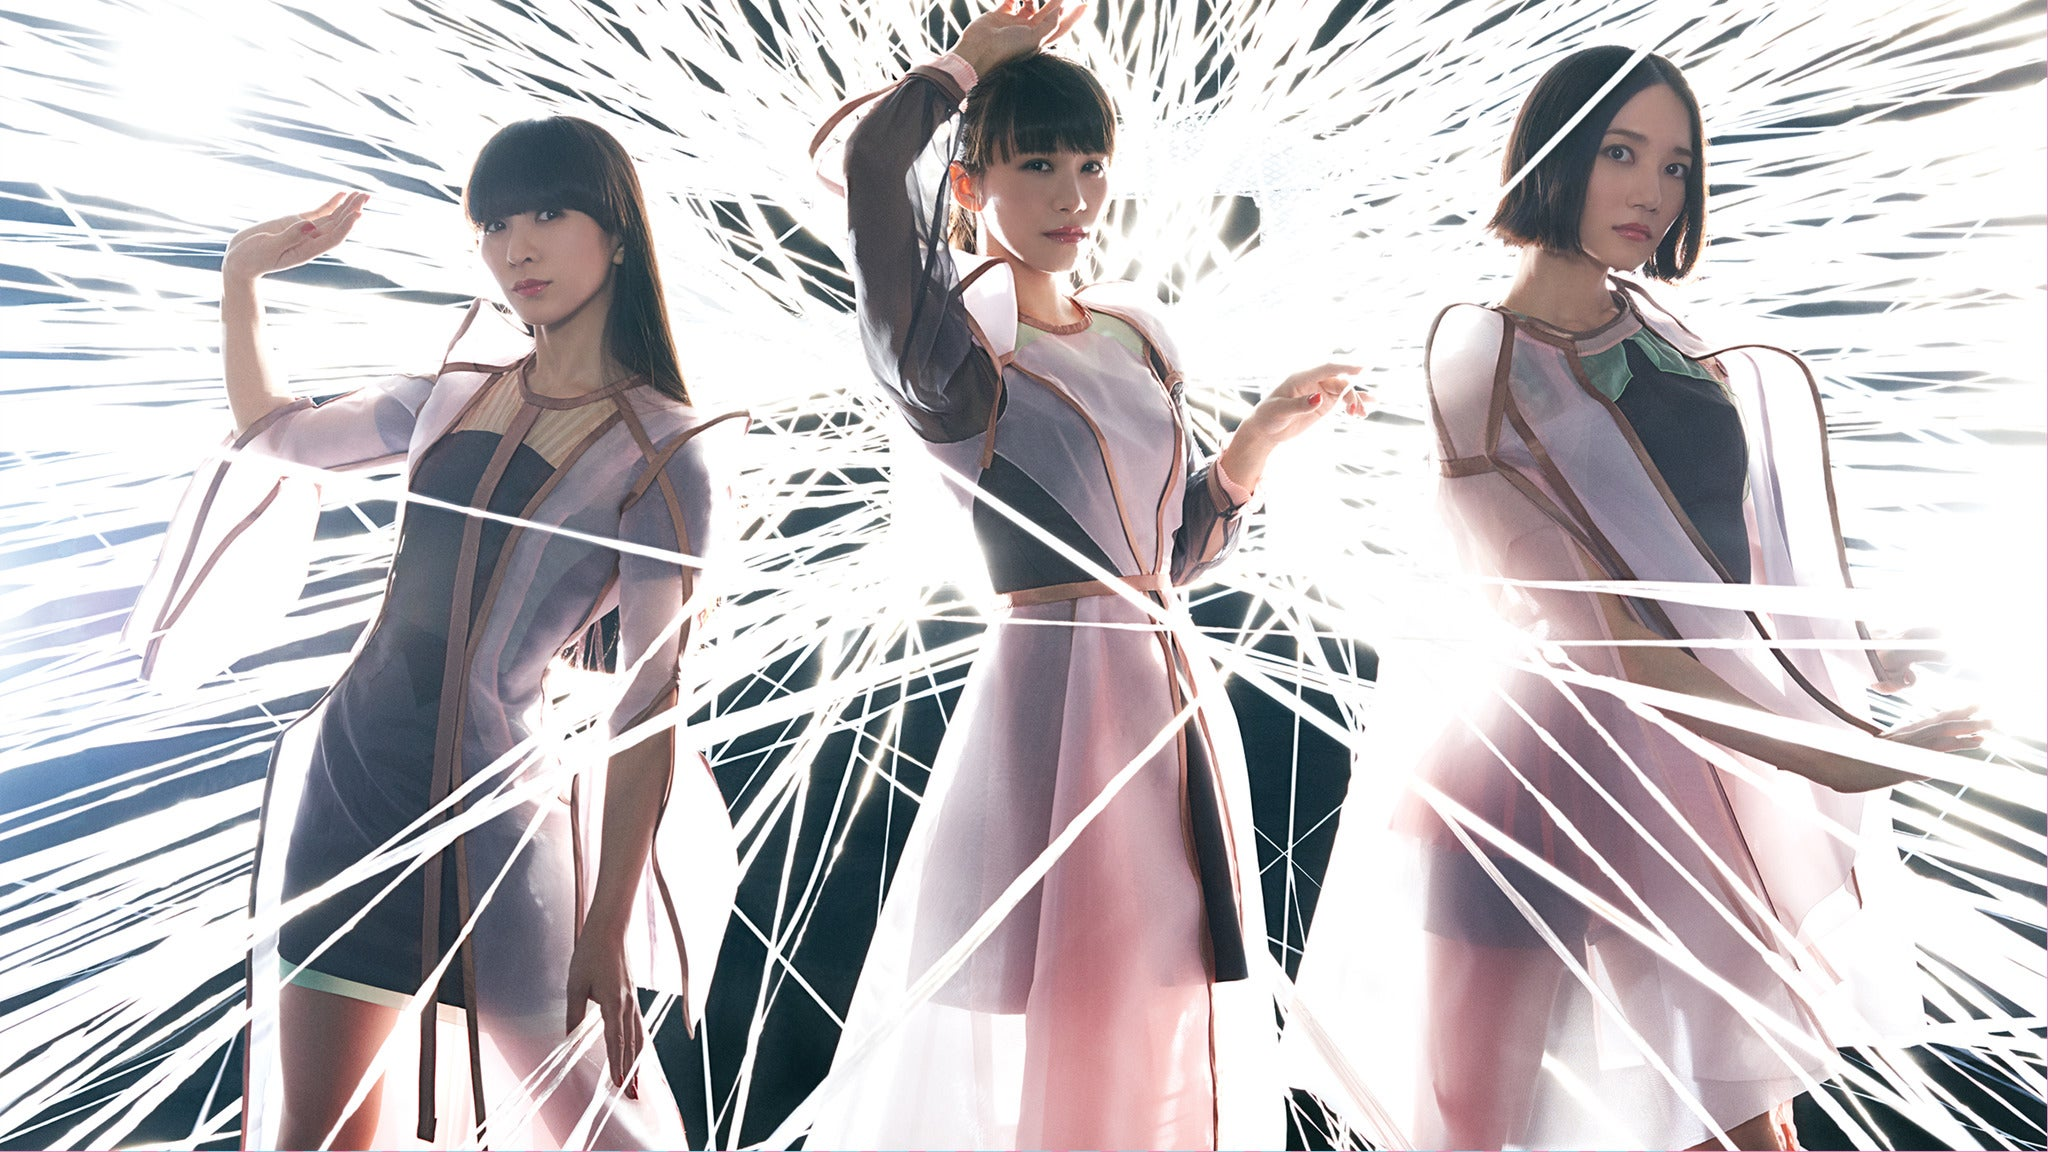 Perfume at Ace Hotel Los Angeles